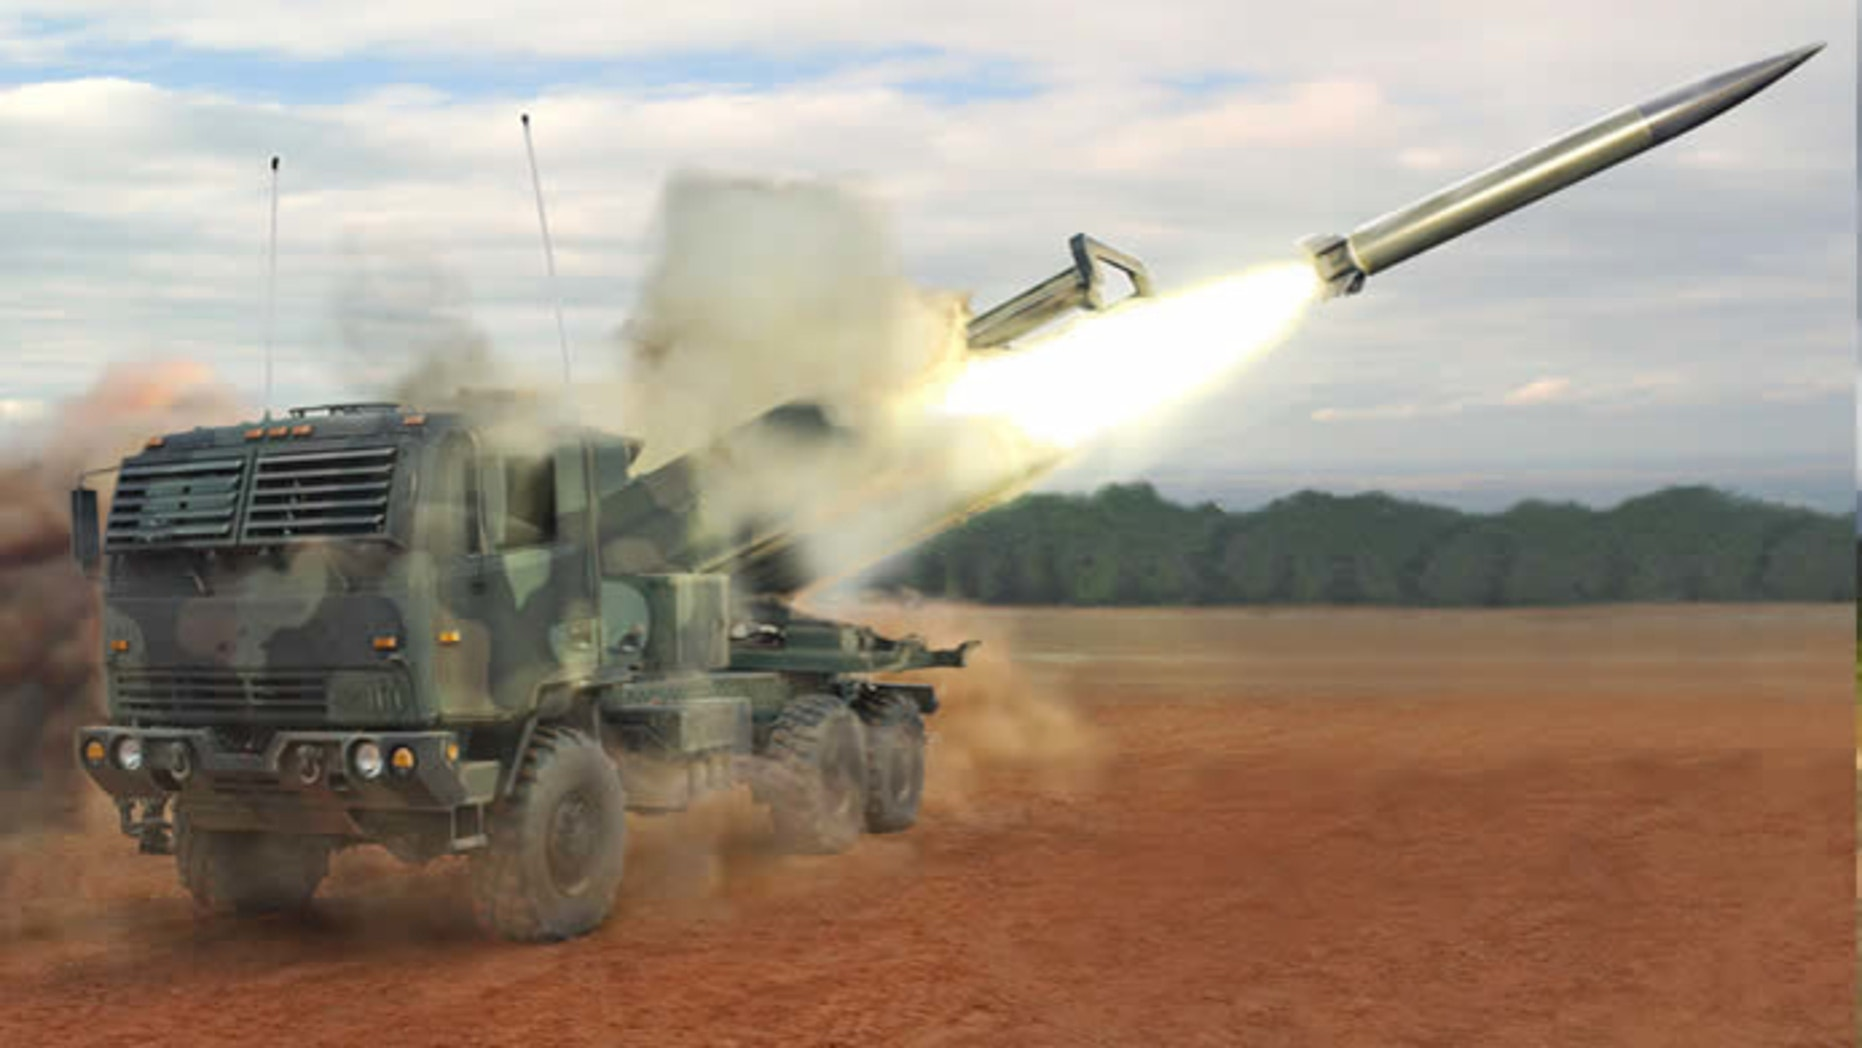 Raytheon's new DeepStrike missile is deployed from a mobile launcher in this artist's rendering (Raytheon)